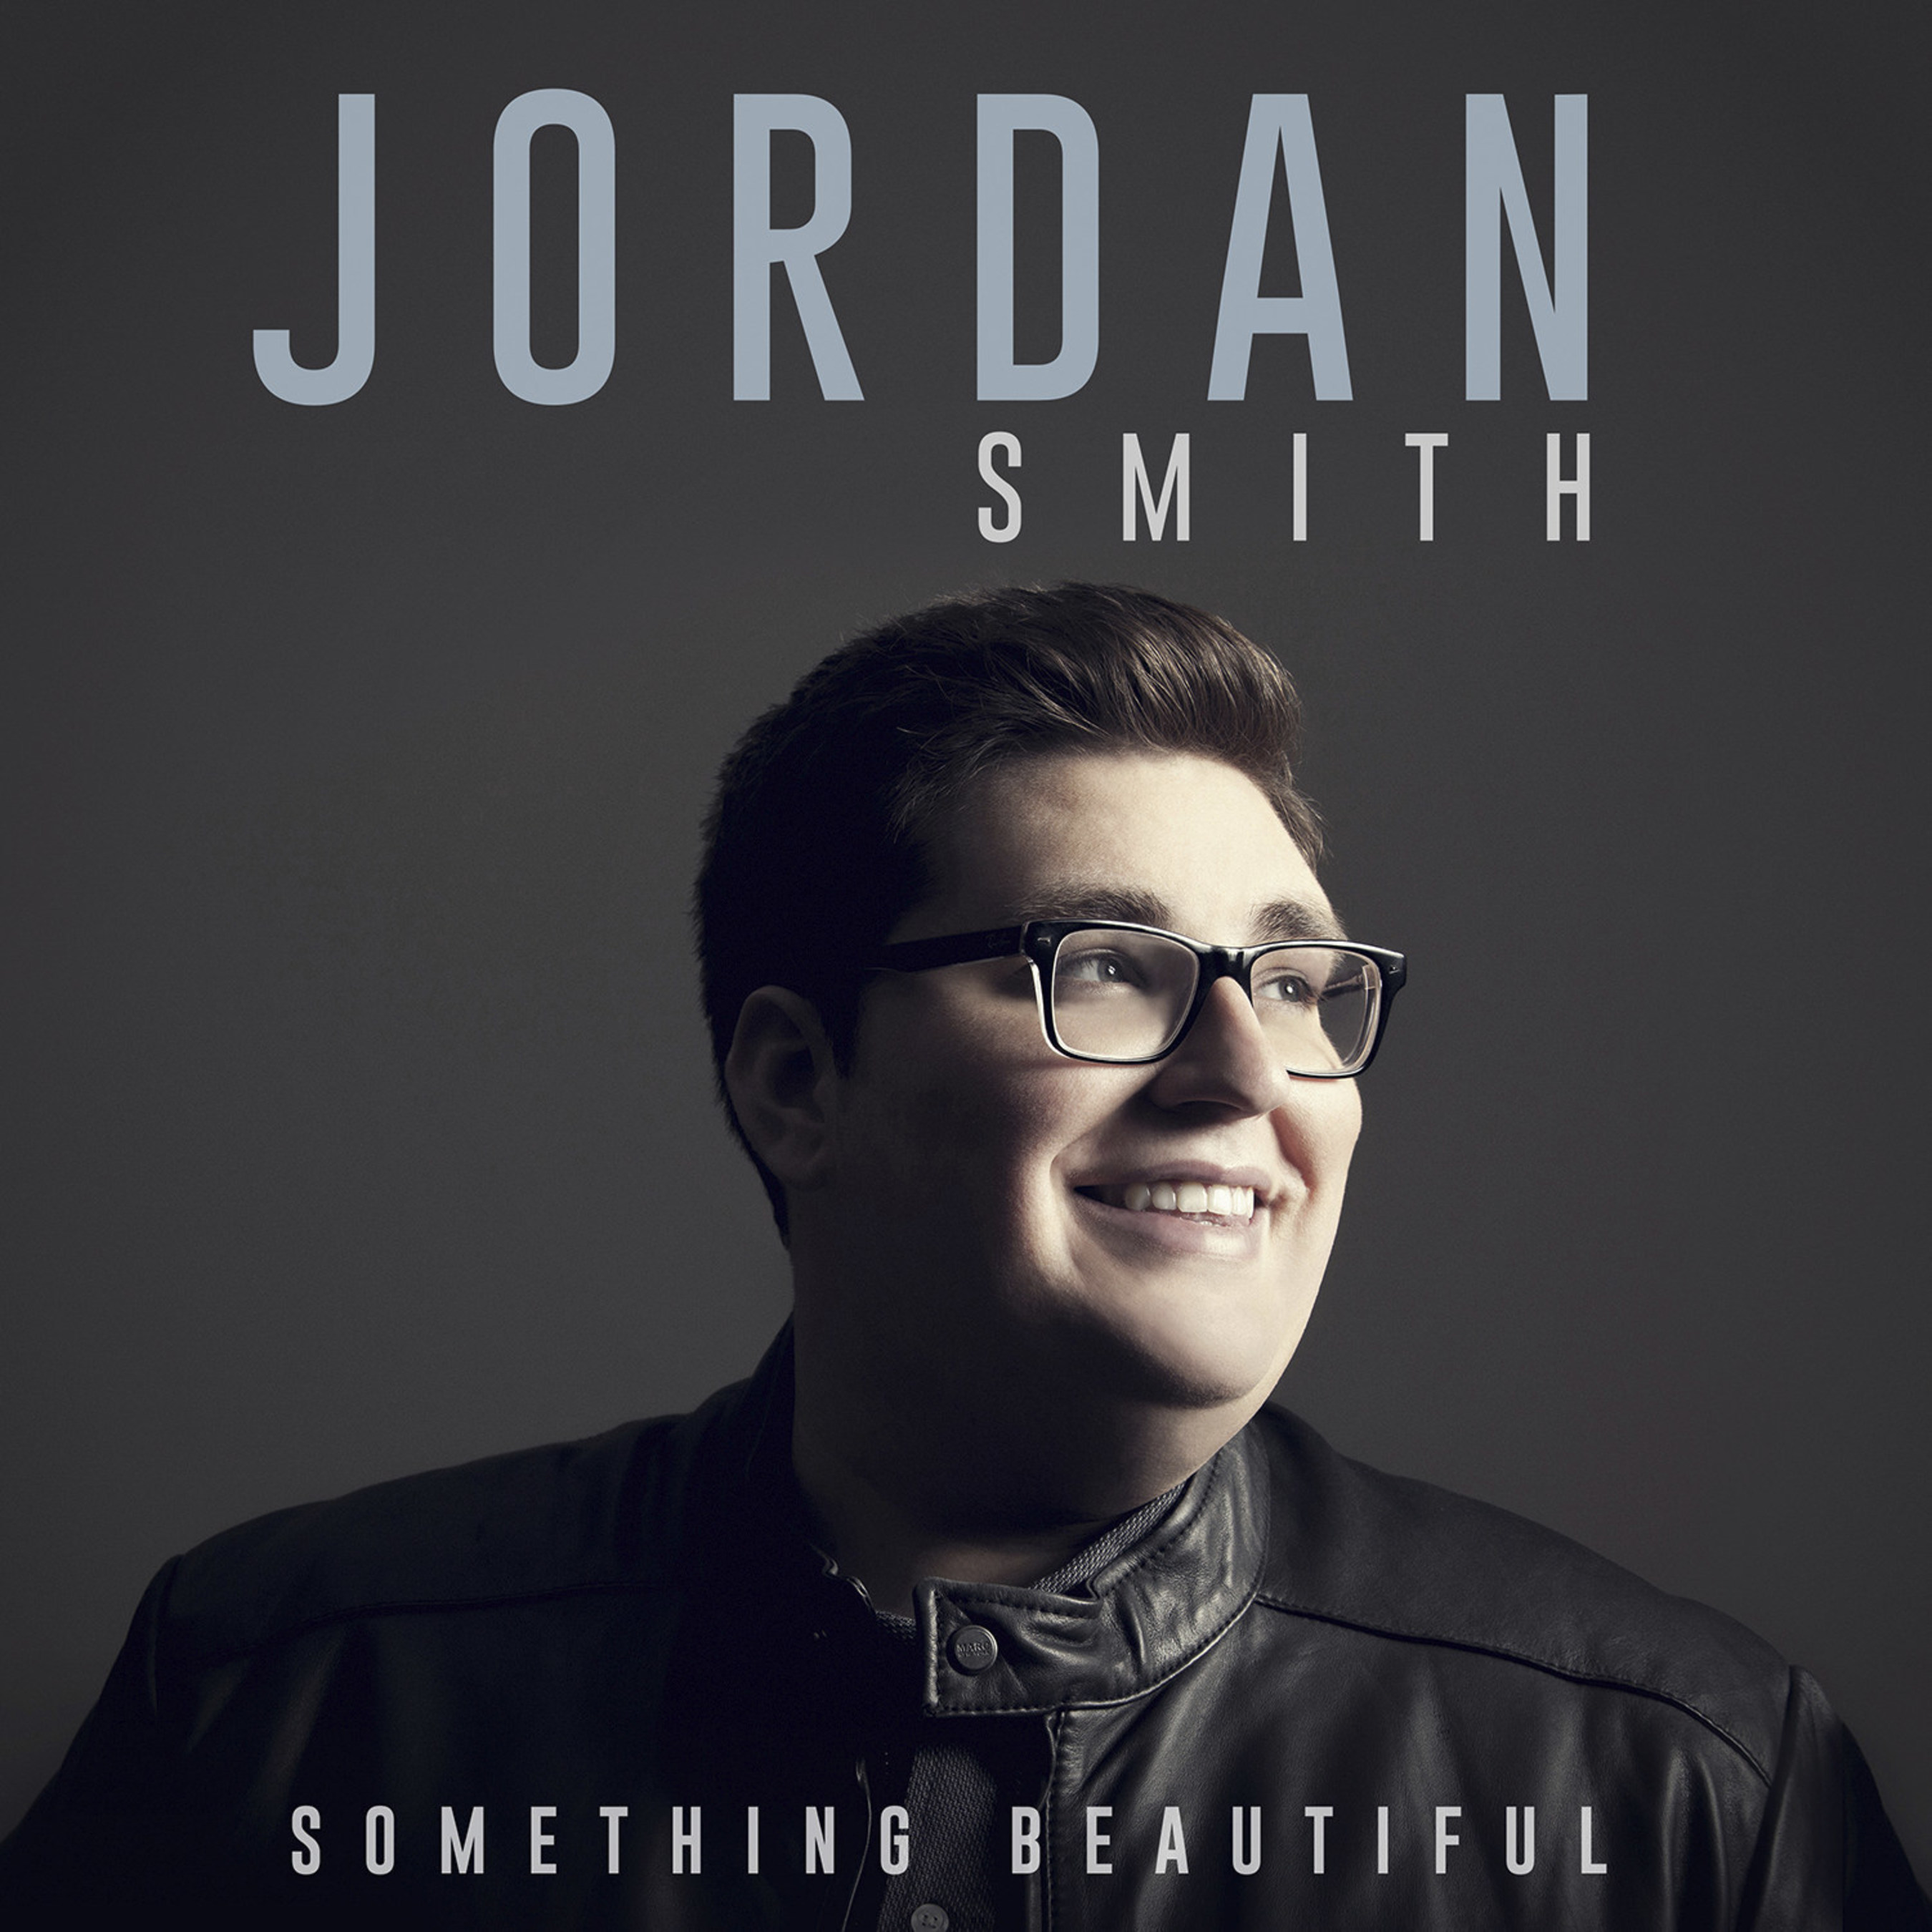 Jordan Smith Announces Full-Length Debut Album Something Beautiful Out March 18